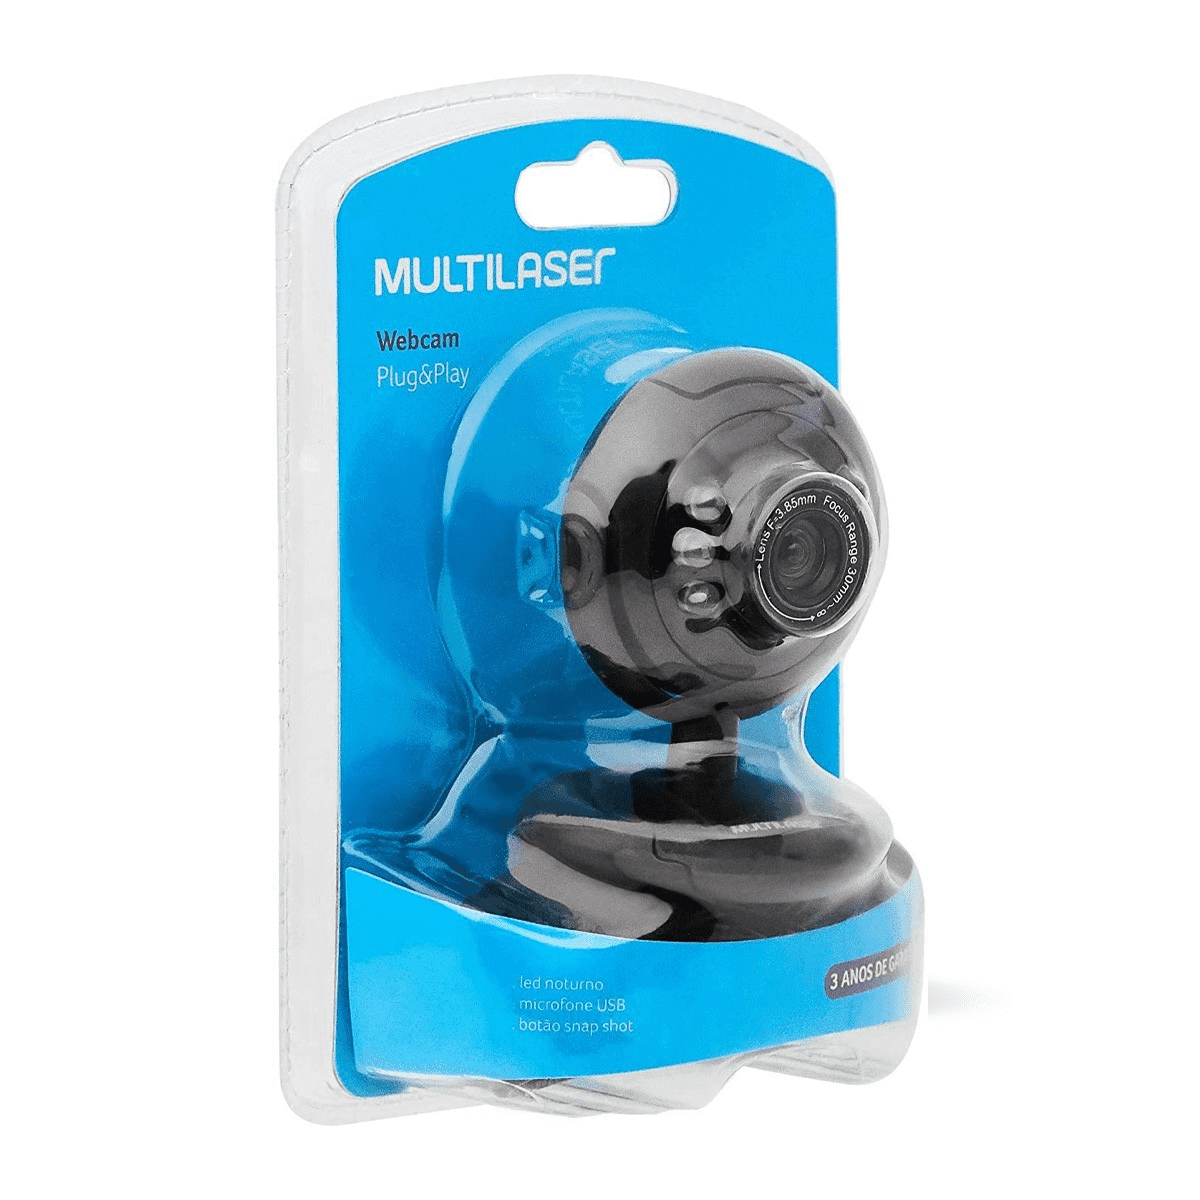 WEBCAM MULTILASER PLUG E PLAY WC045 16MP MICROFONE NIGHTVISION LED NOTURNO USB PRETO 1M DE CABO